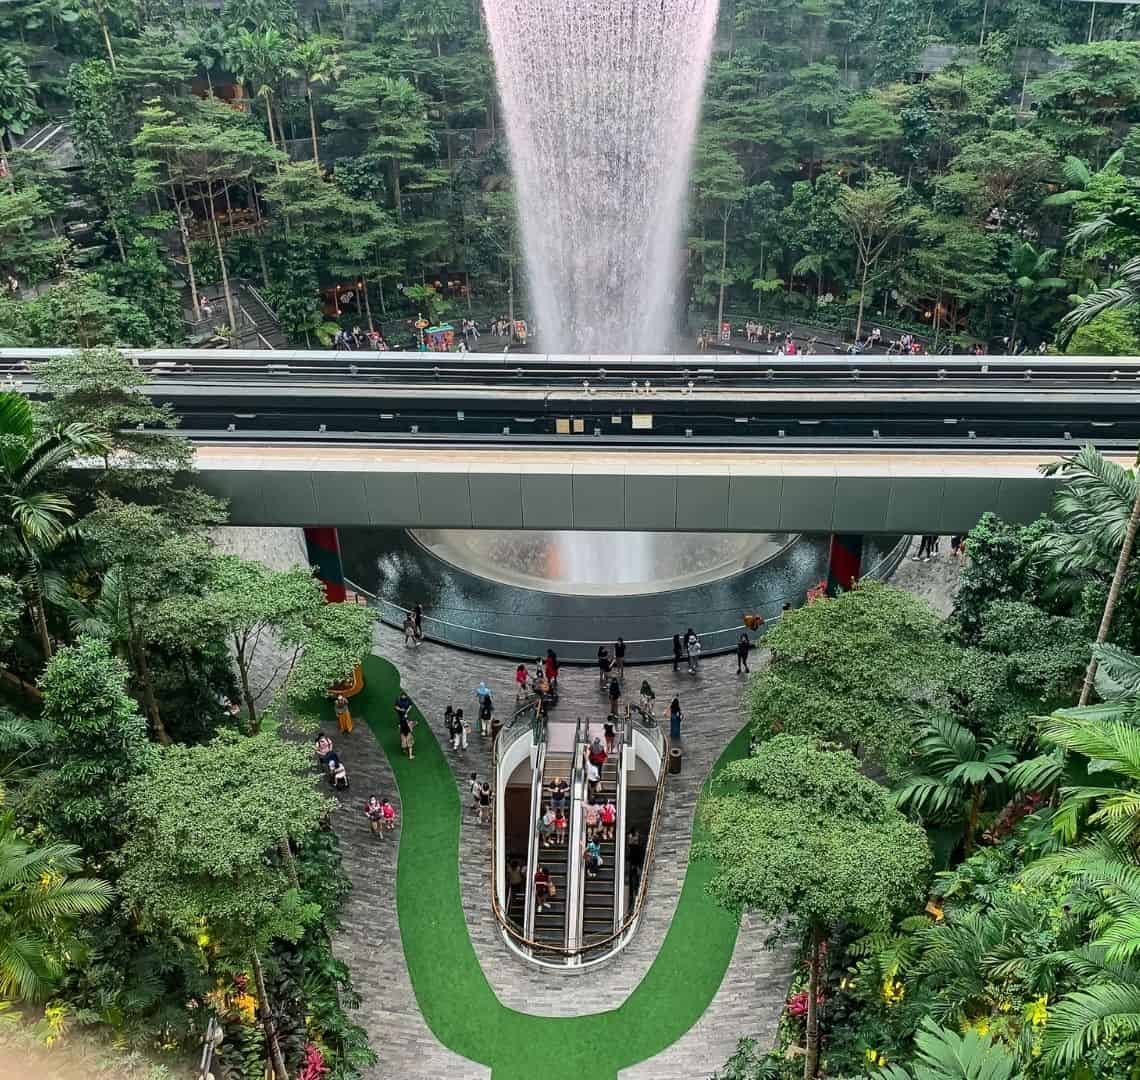 """Changi Airport's rain vortex - clear water cascades from the ceiling to several floors below. The """"rainforest"""" area is full of lush green tropical plants all built around the circular vortex. Several people are milling about on the paved floor. There is an escalator going down in the middle of the picture at the bottom and a railway running horizontally through the middle."""